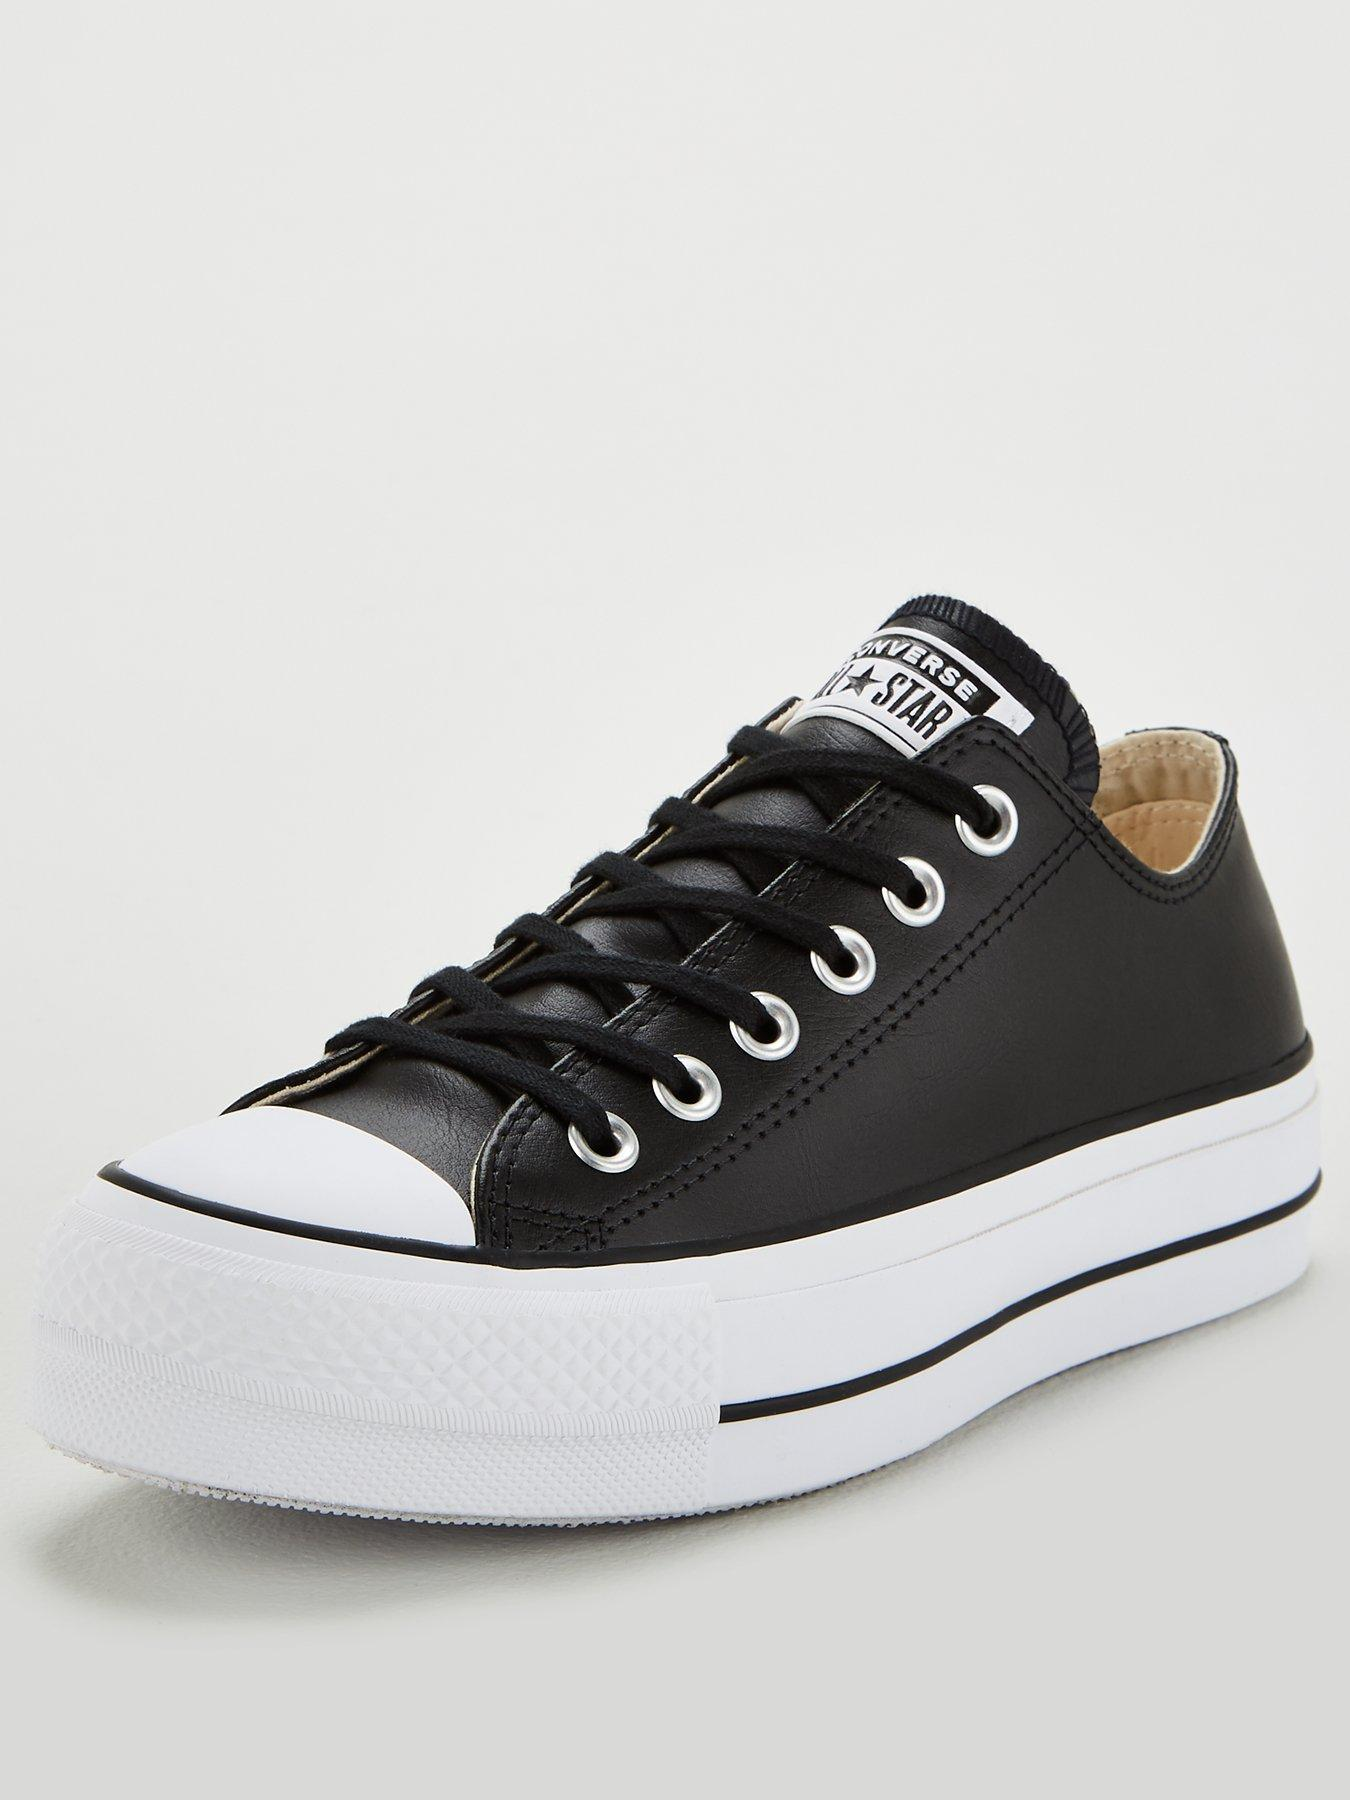 Womens Converse Very.co.uk